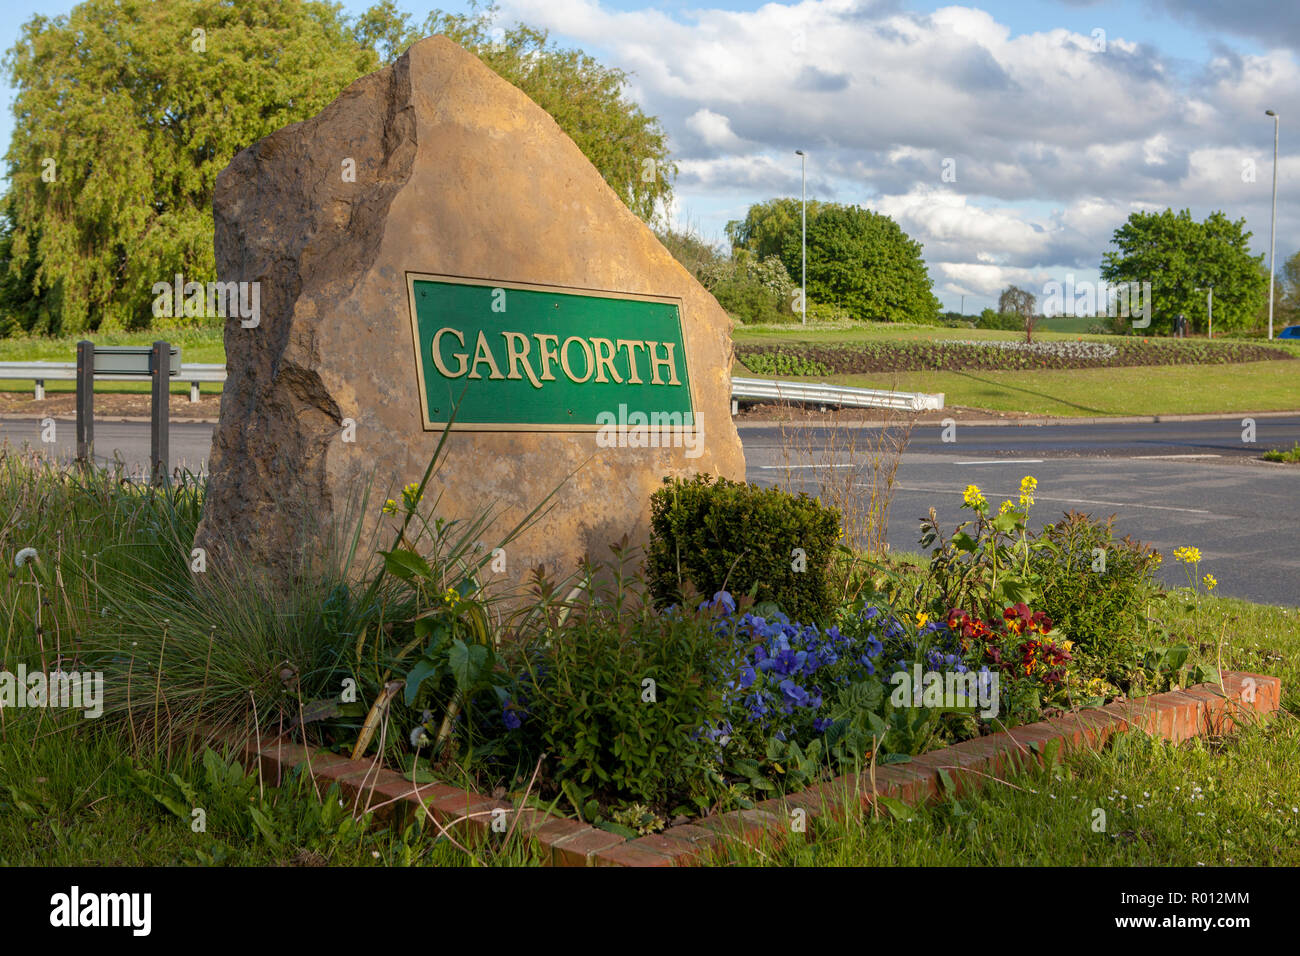 A substantial stone boundary sign for Garforth, near Leeds in West Yorkshire - Stock Image